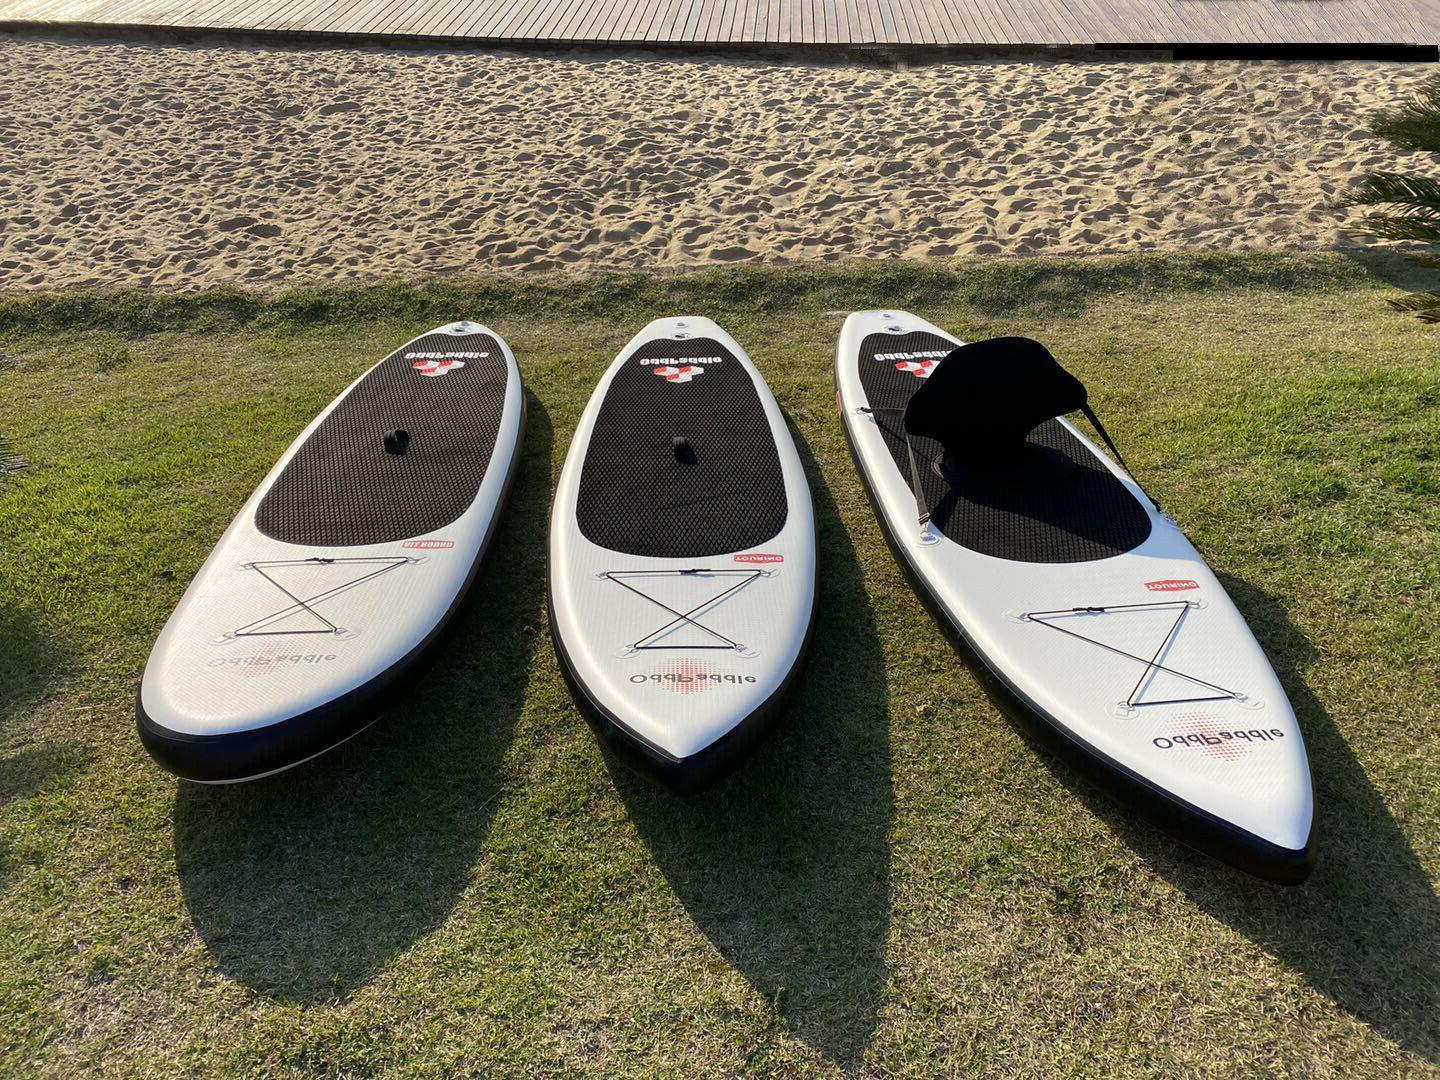 stand up paddleboards 10 6 x31 x6